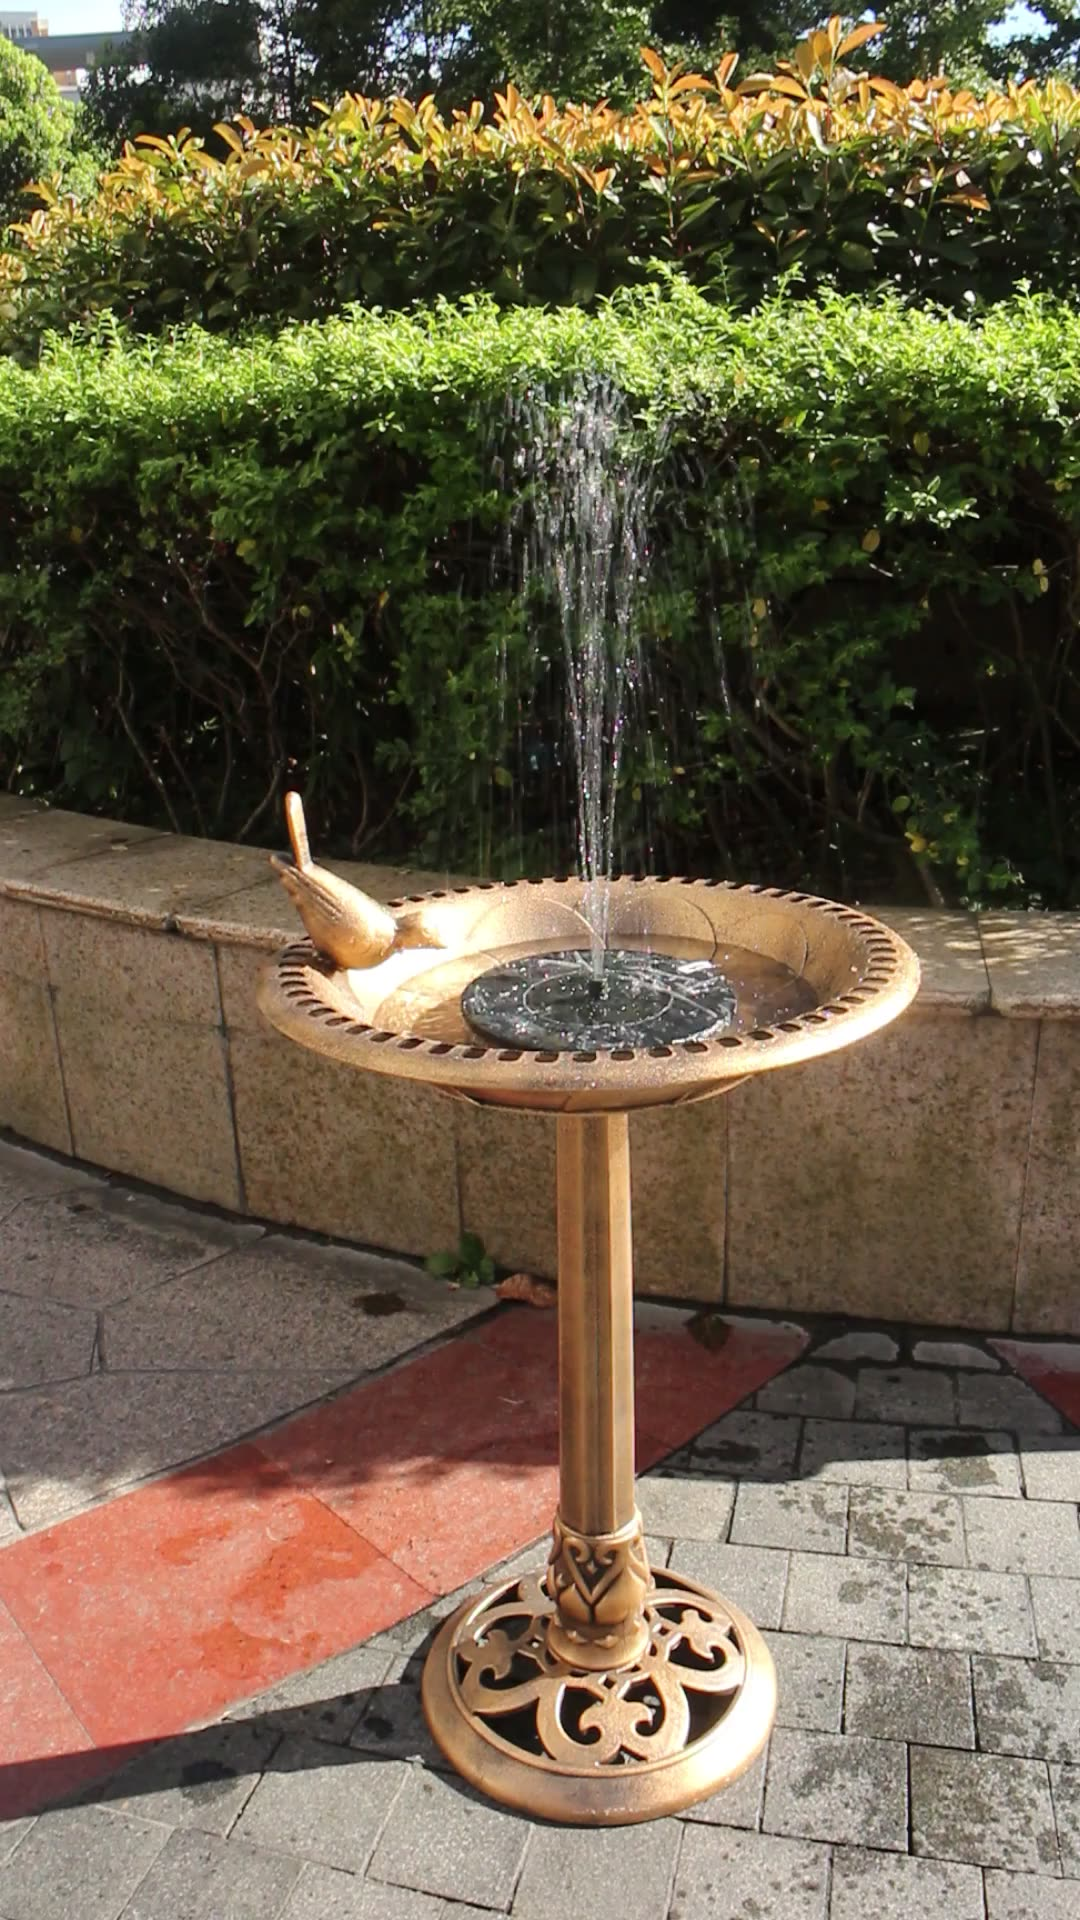 2020 New Solar Garten Jardin Garden Bird Bath Fountain with bird decoration